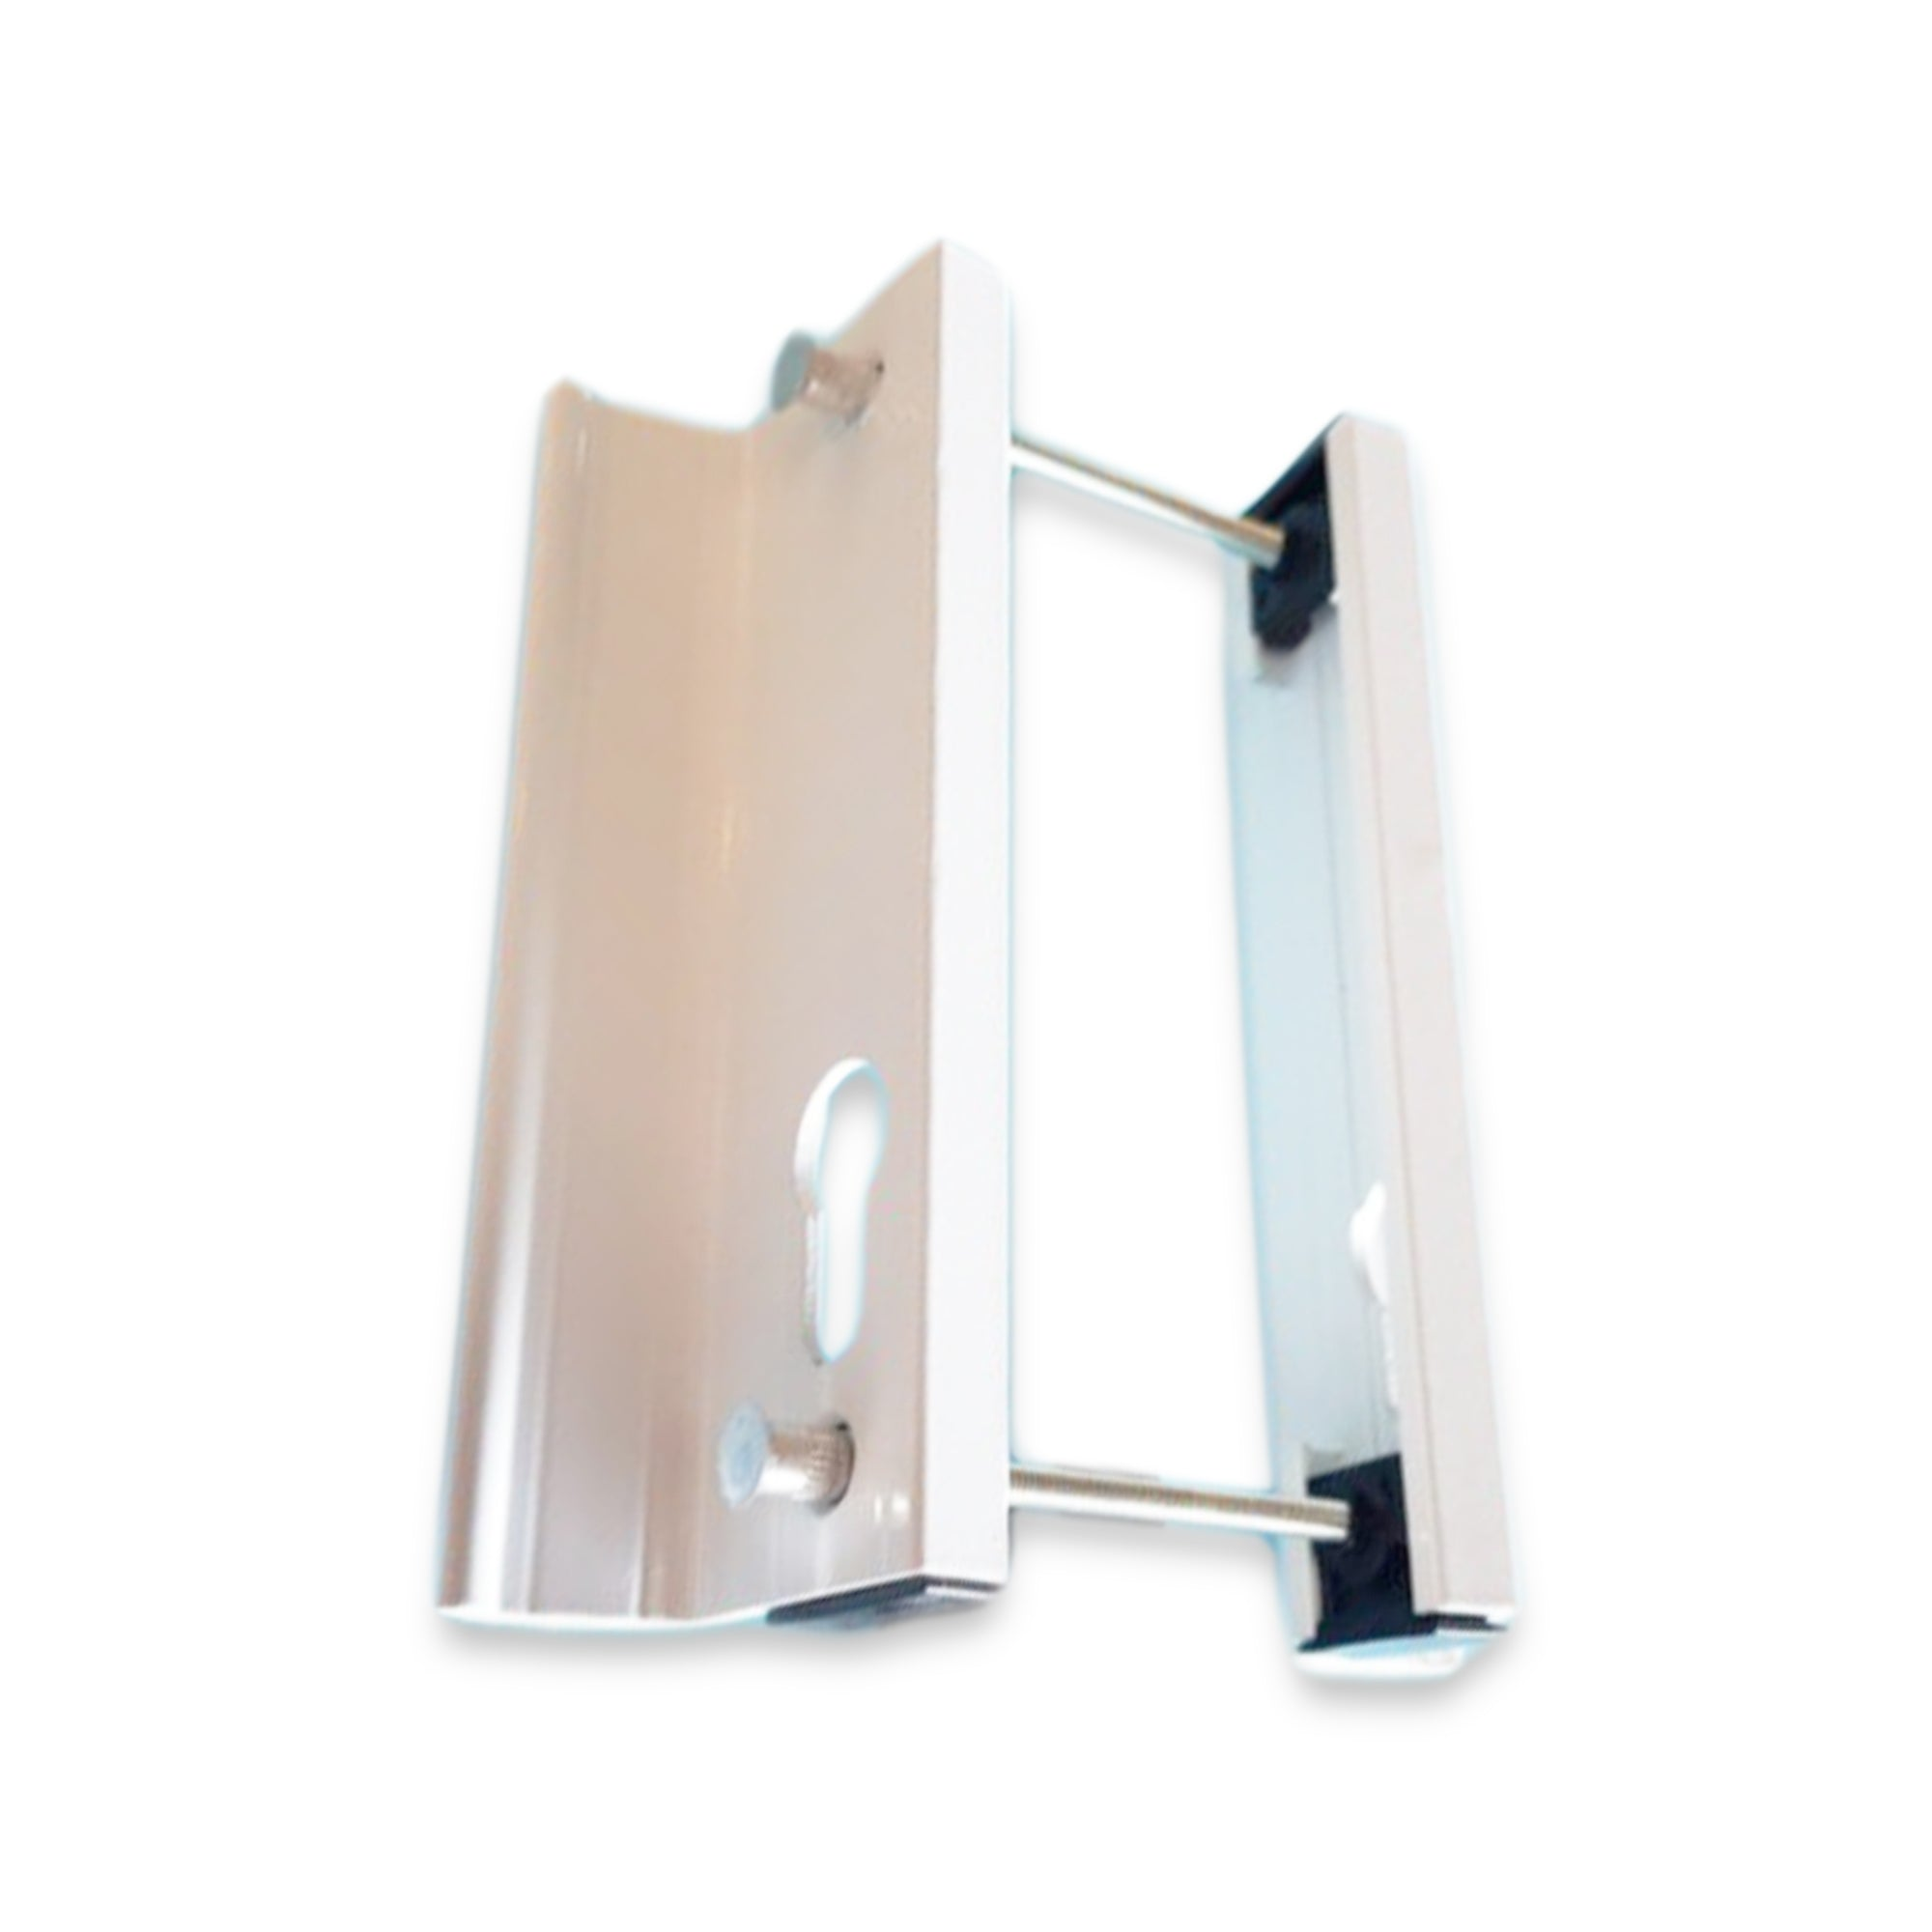 Schlegel UPVC Inline Sliding Patio Door Handle 43mm PZ 135mm Screw Centres Pair -  - Schlegel - UPVCSTORE